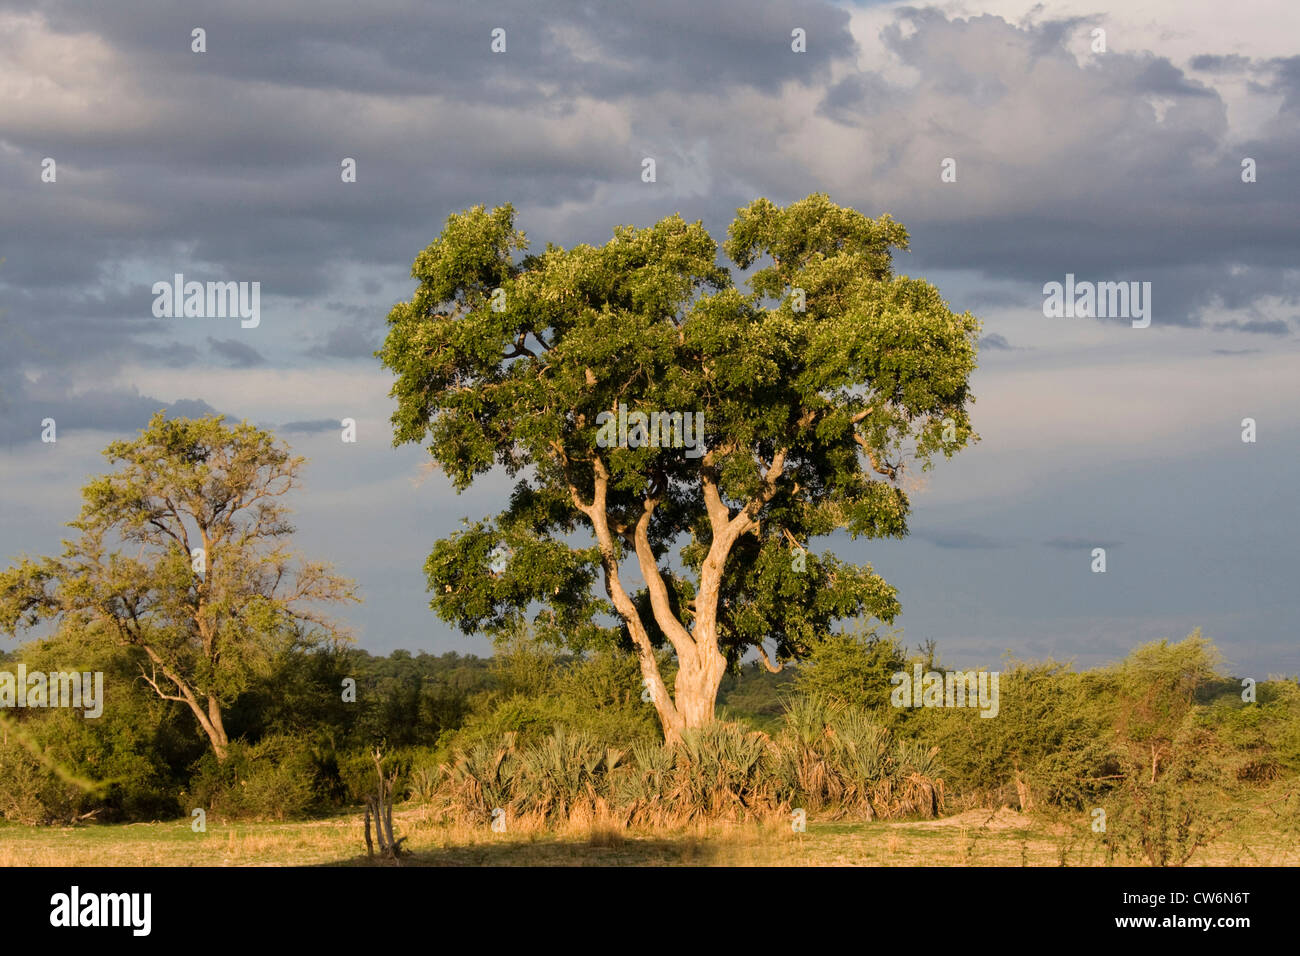 stormy atmosphere at Mahango National Park, Namibia, Caprivi, Mahango NP - Stock Image